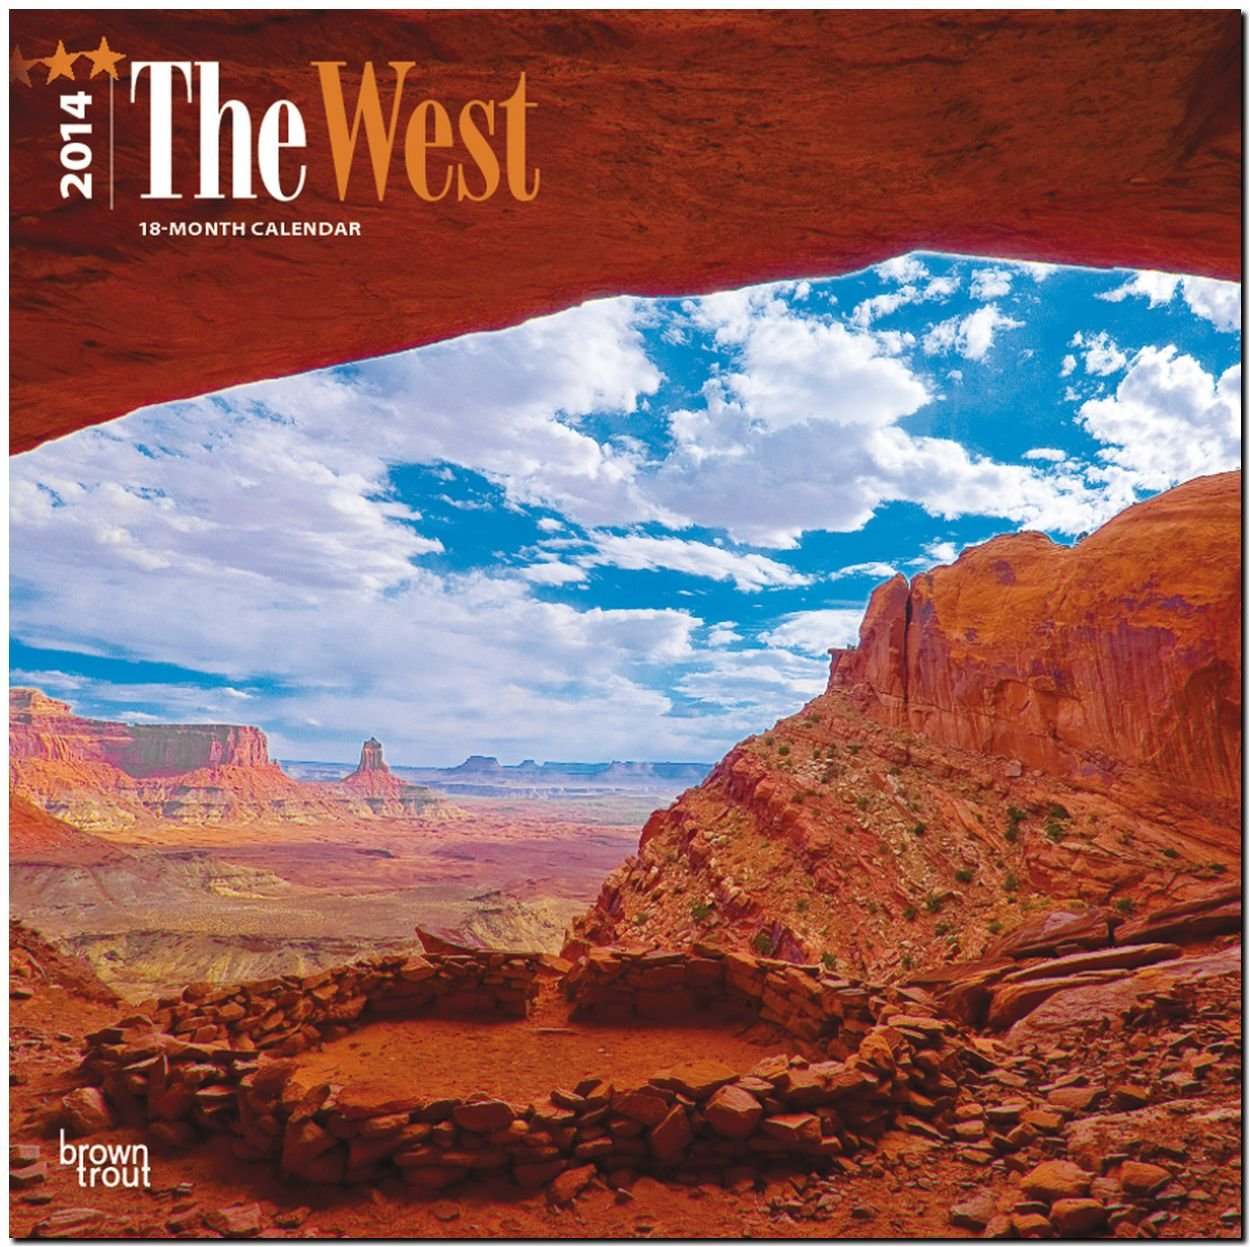 The West 2014 - Der Westen der USA: Original BrownTrout-Kalender [Mehrsprachig] [Kalender]